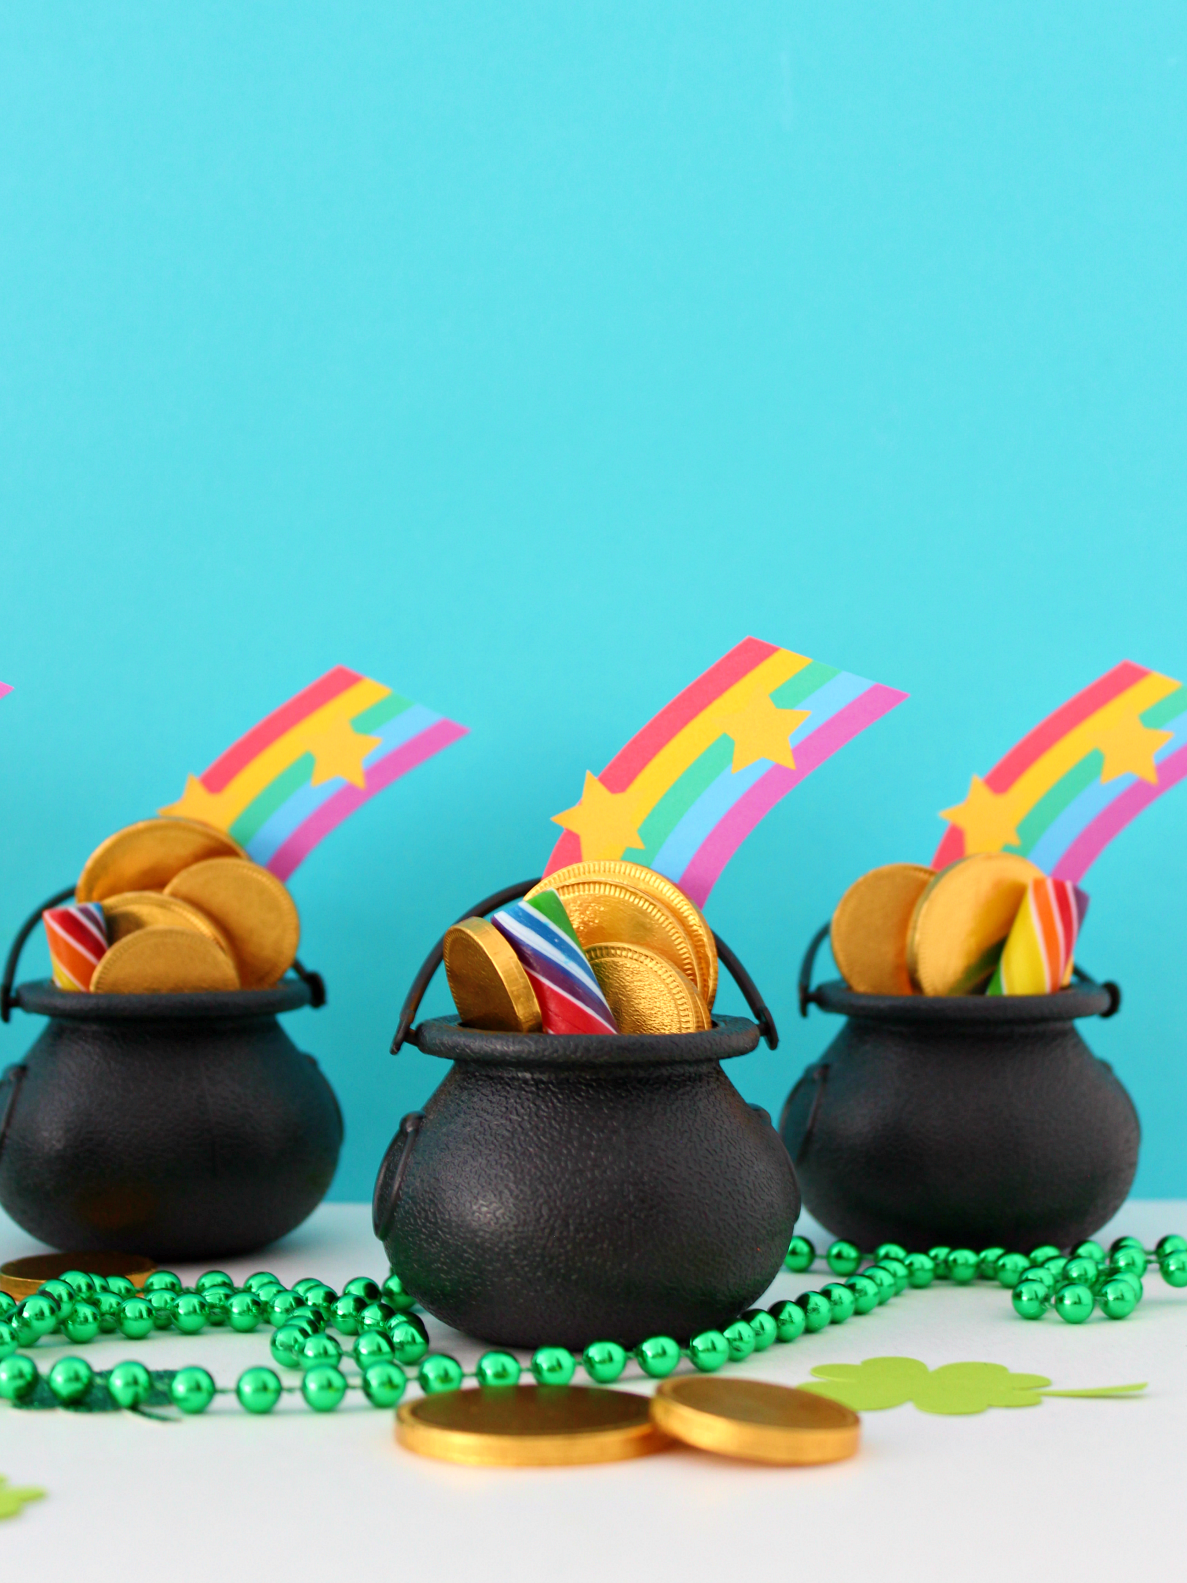 ST.  PADDY'S DAY CANDY CAULDRONS WITH FREE PRINTABLE RAINBOW